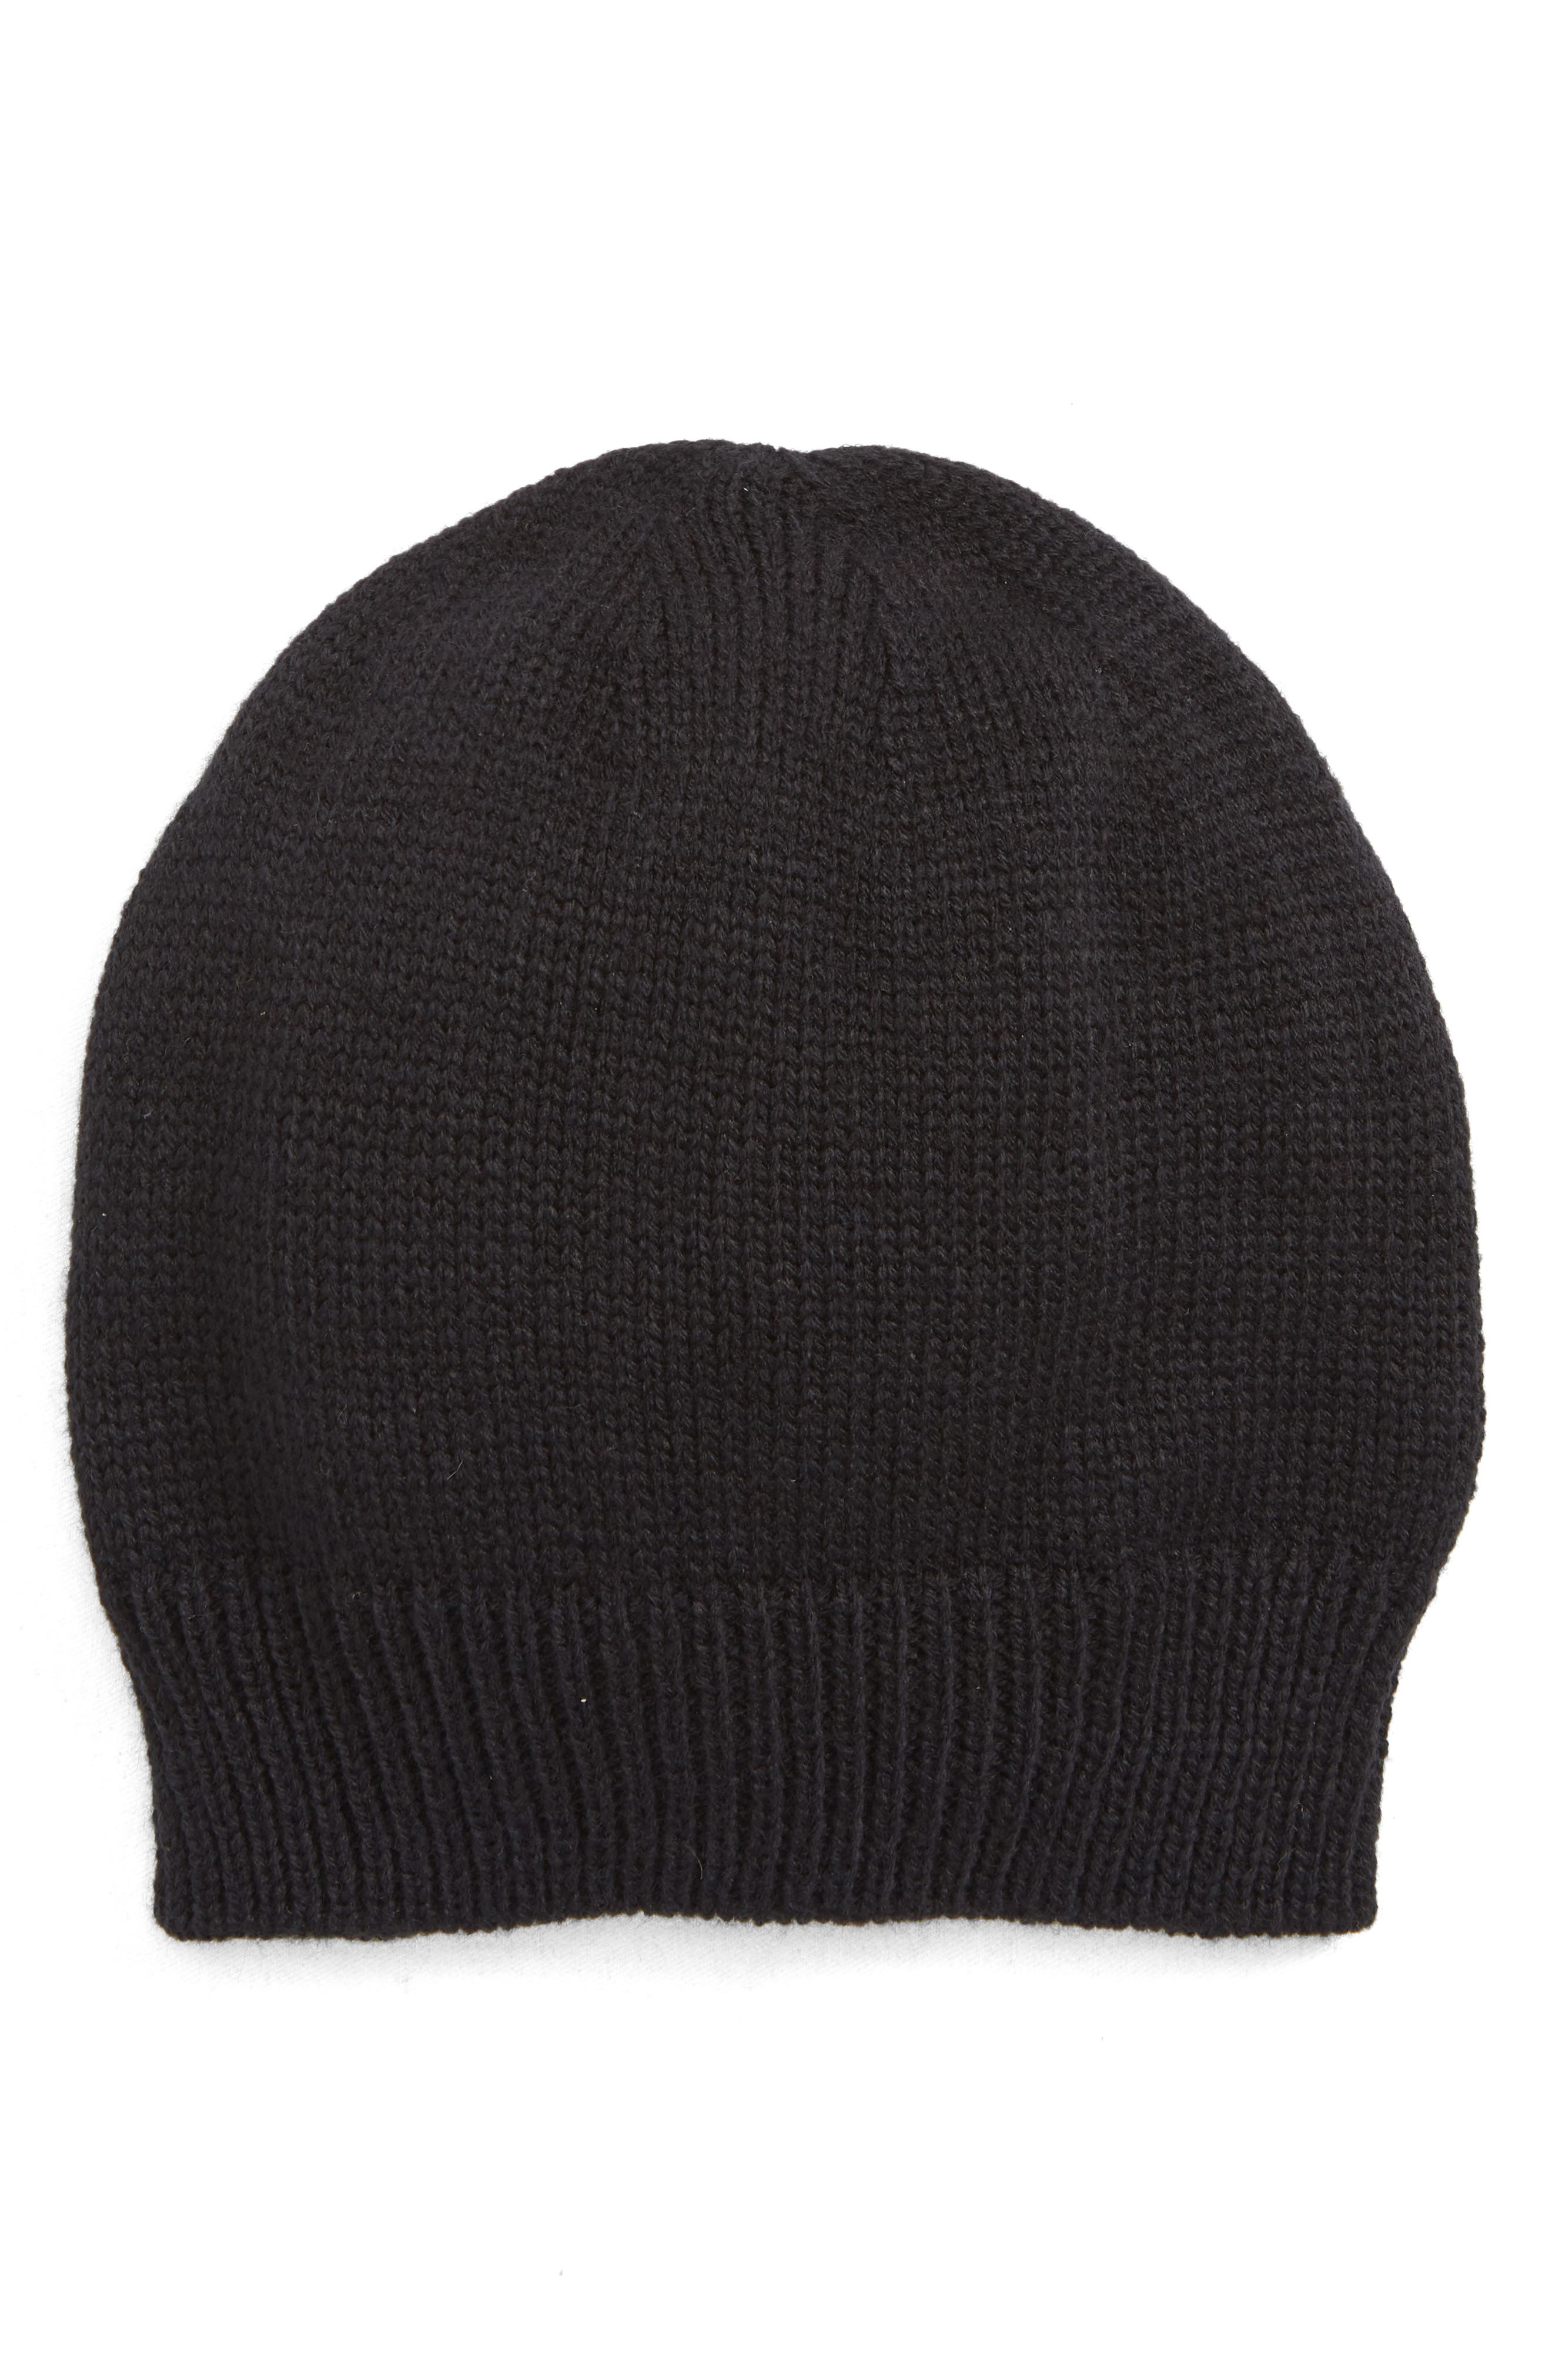 Snap Band Beanie,                         Main,                         color, BLACK